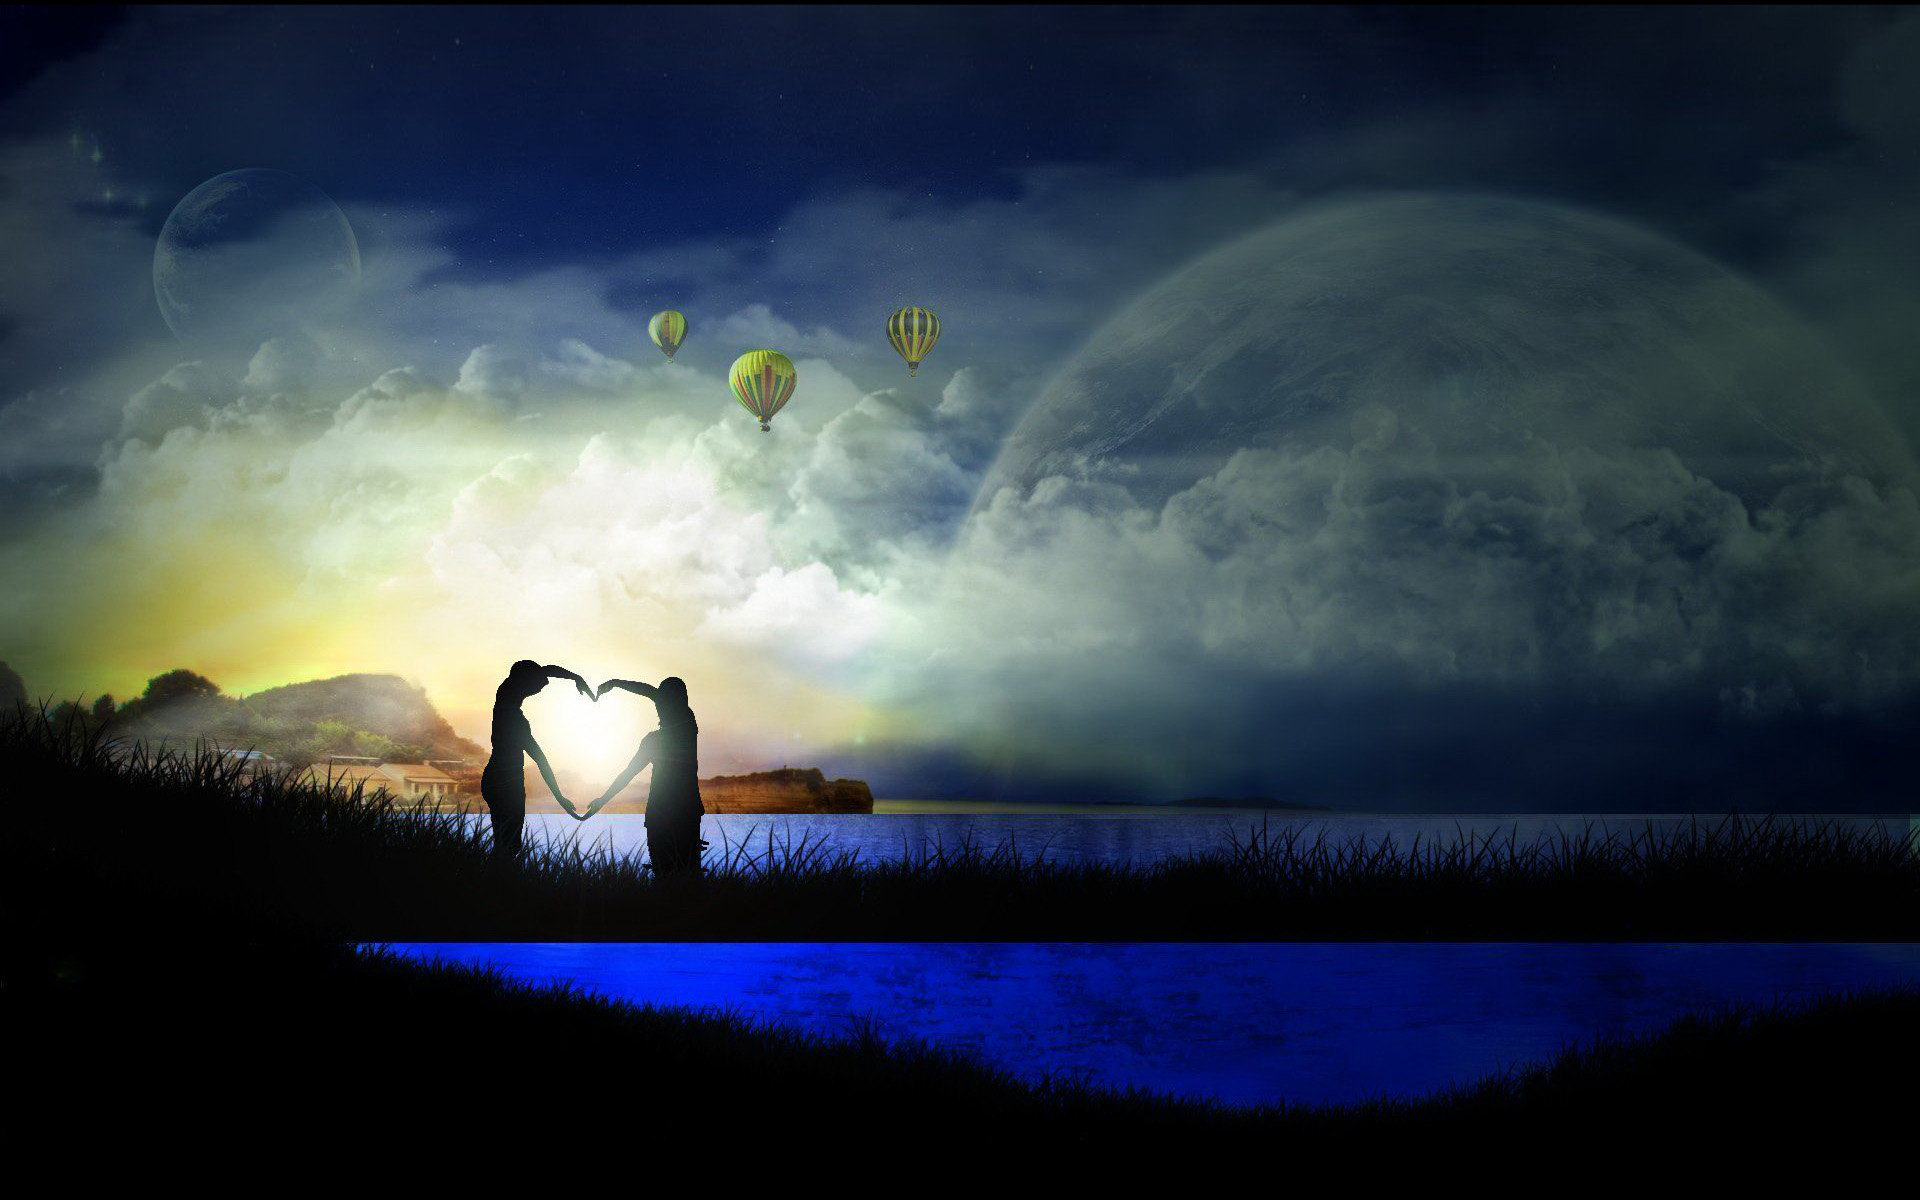 Desktop Wallpaper Romantic Love : Romantic Wallpapers Best Wallpapers